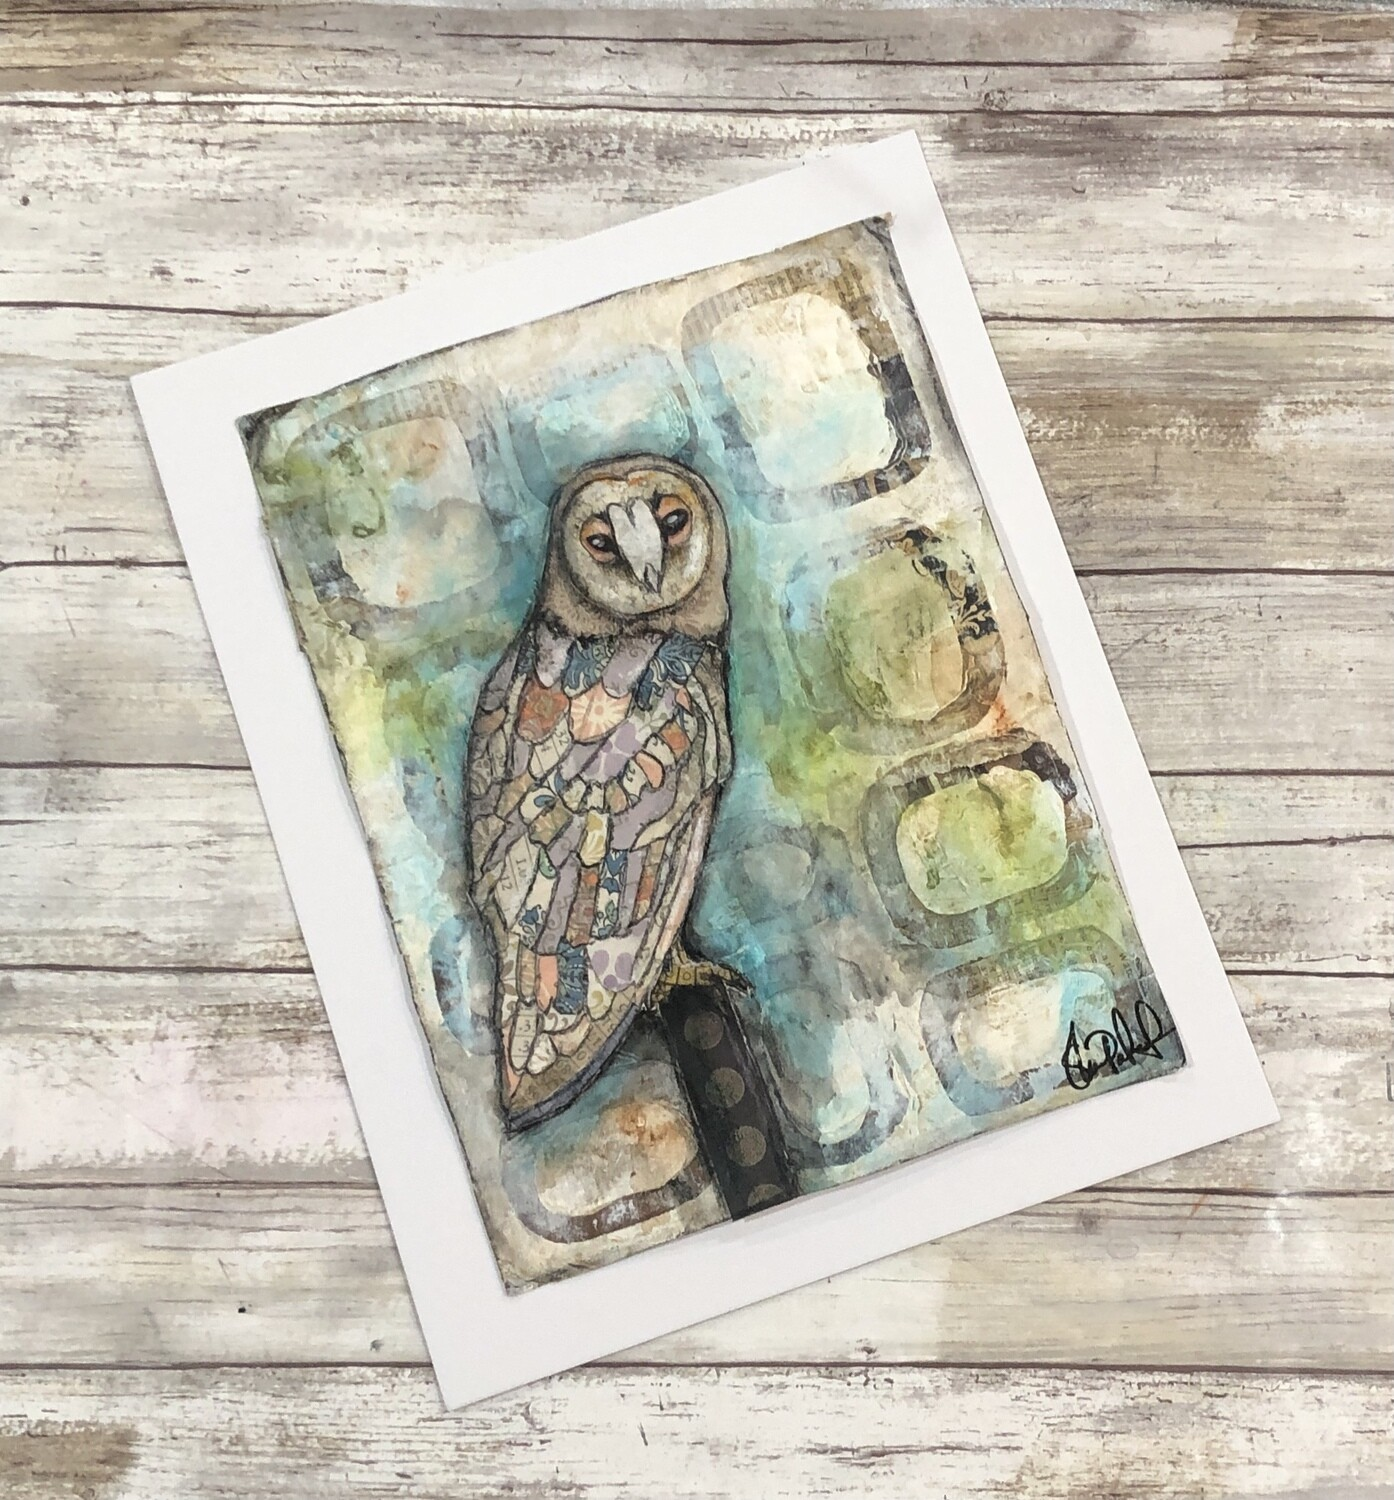 Peaceful Owl 11x14 mixed media original to be framed